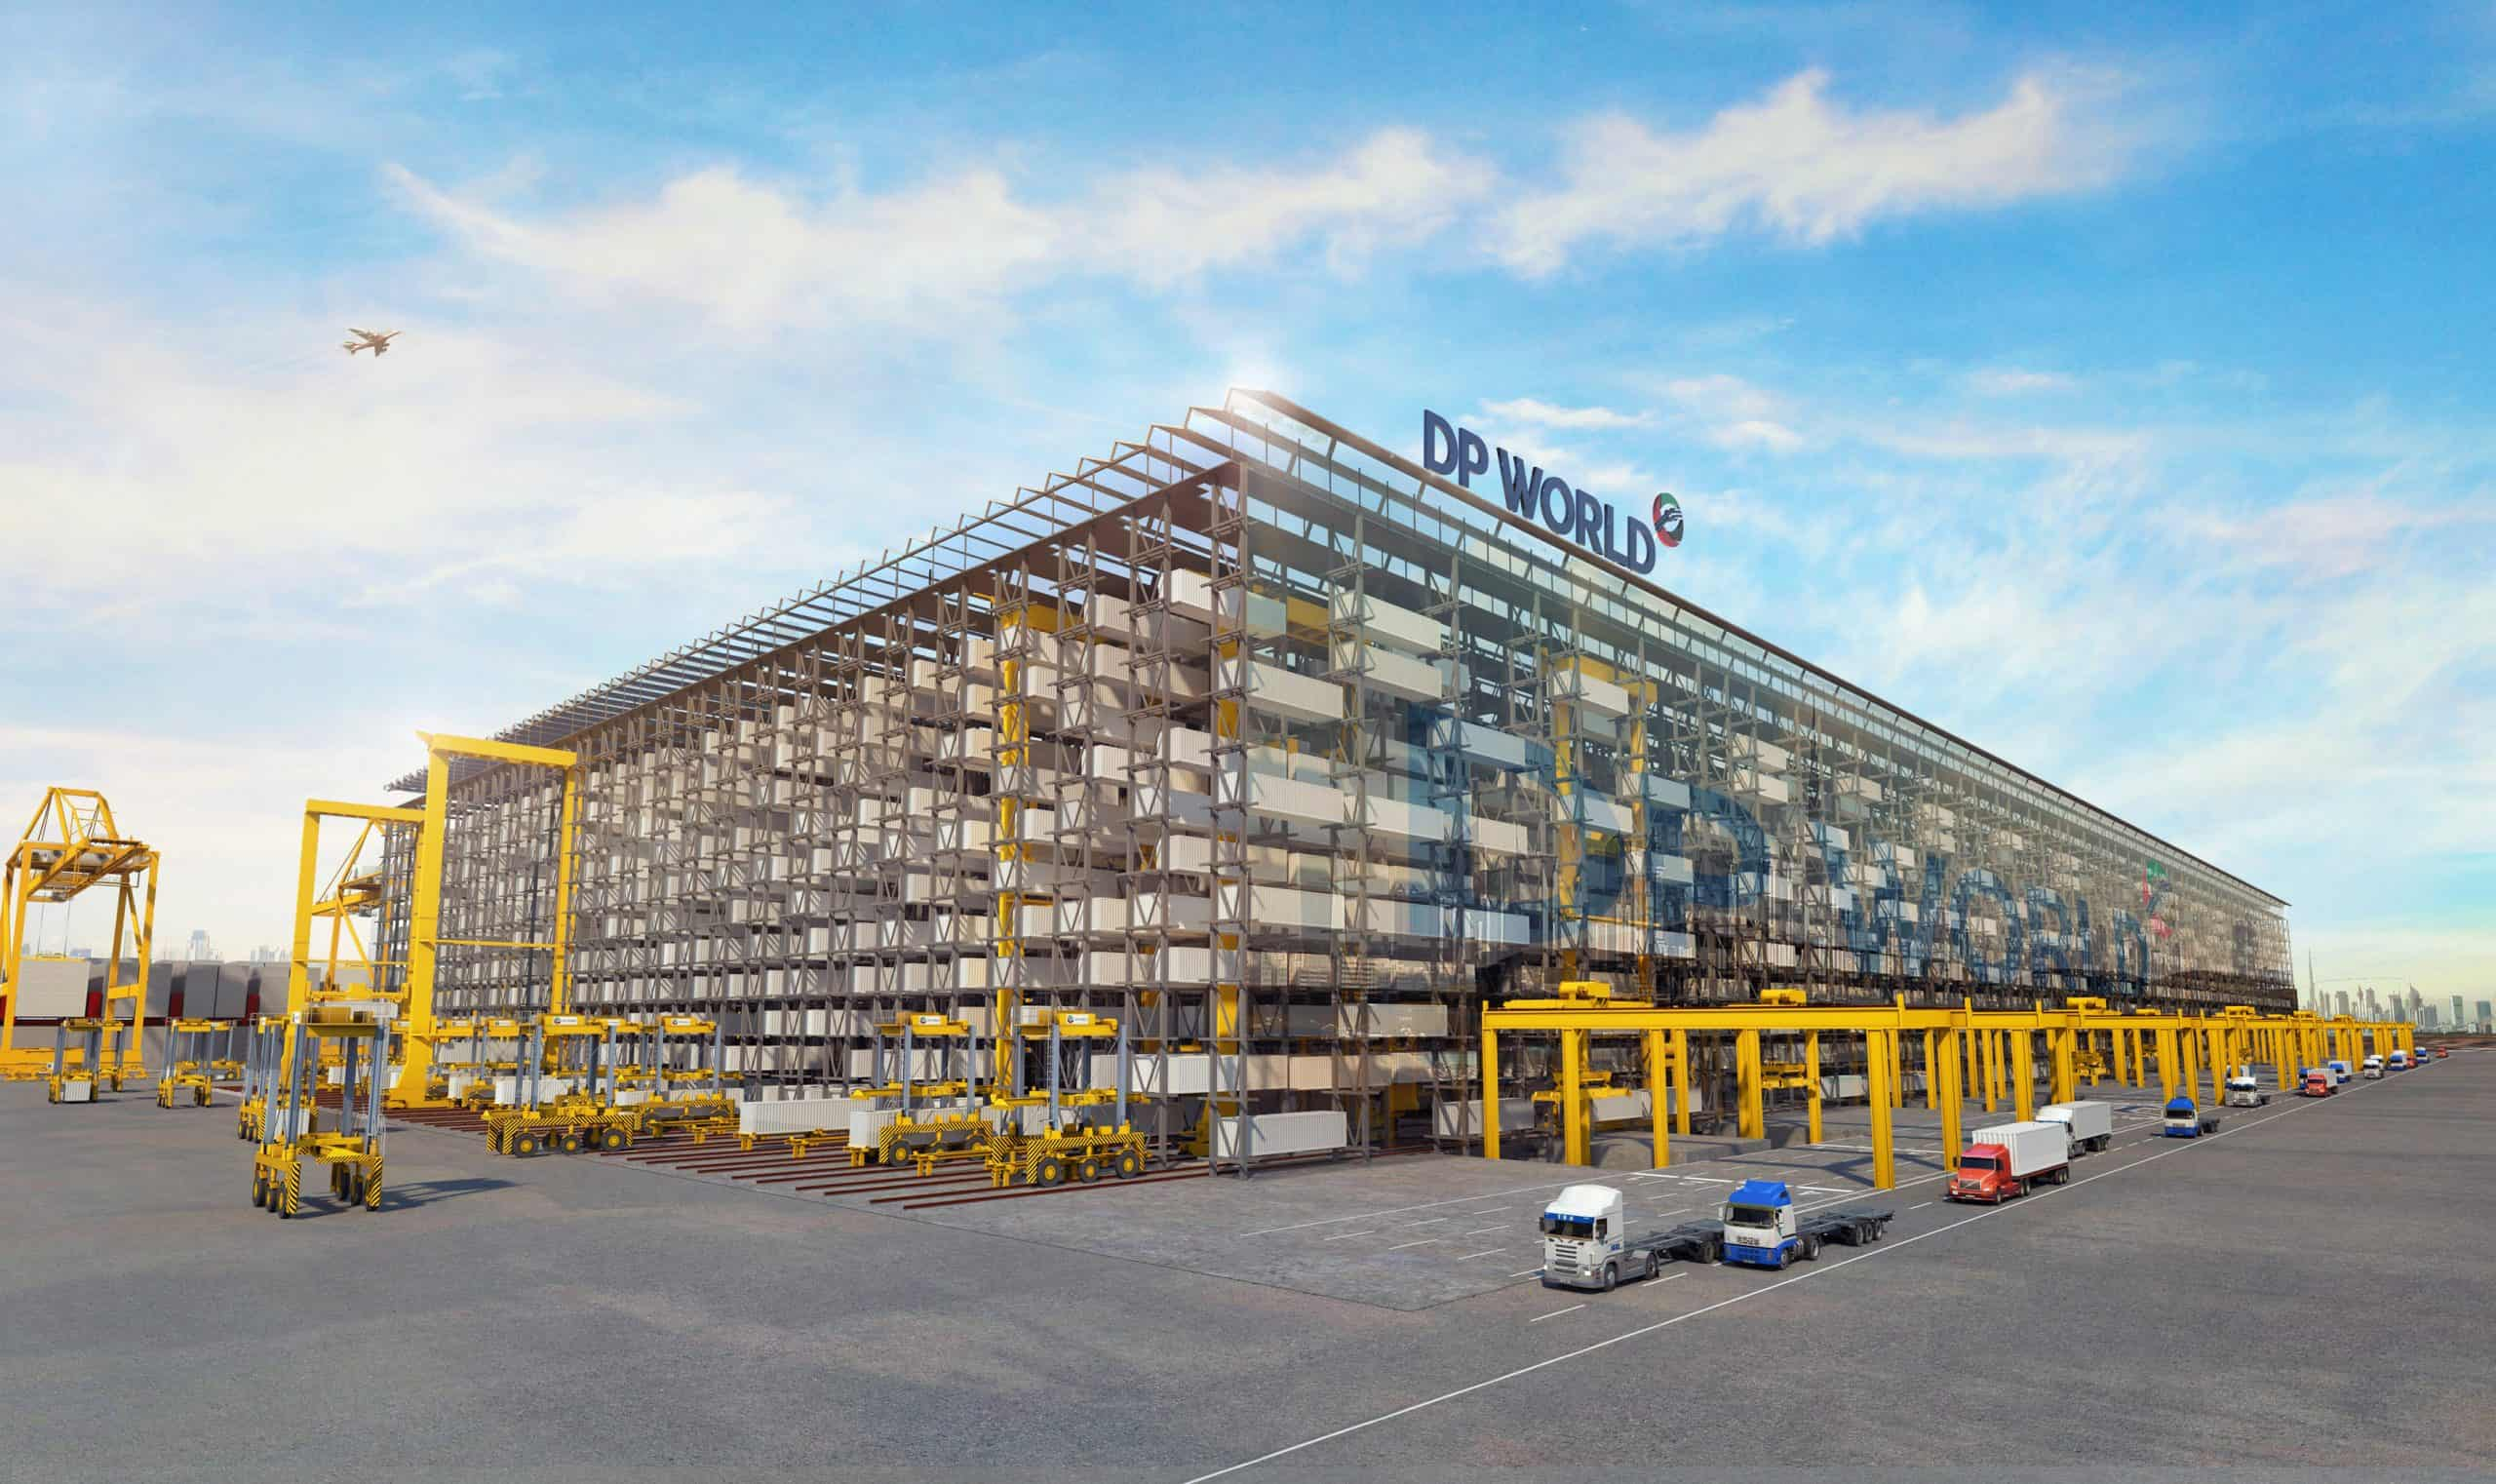 DP World looks to replace yard stacking with high bay storage in Jebel Ali